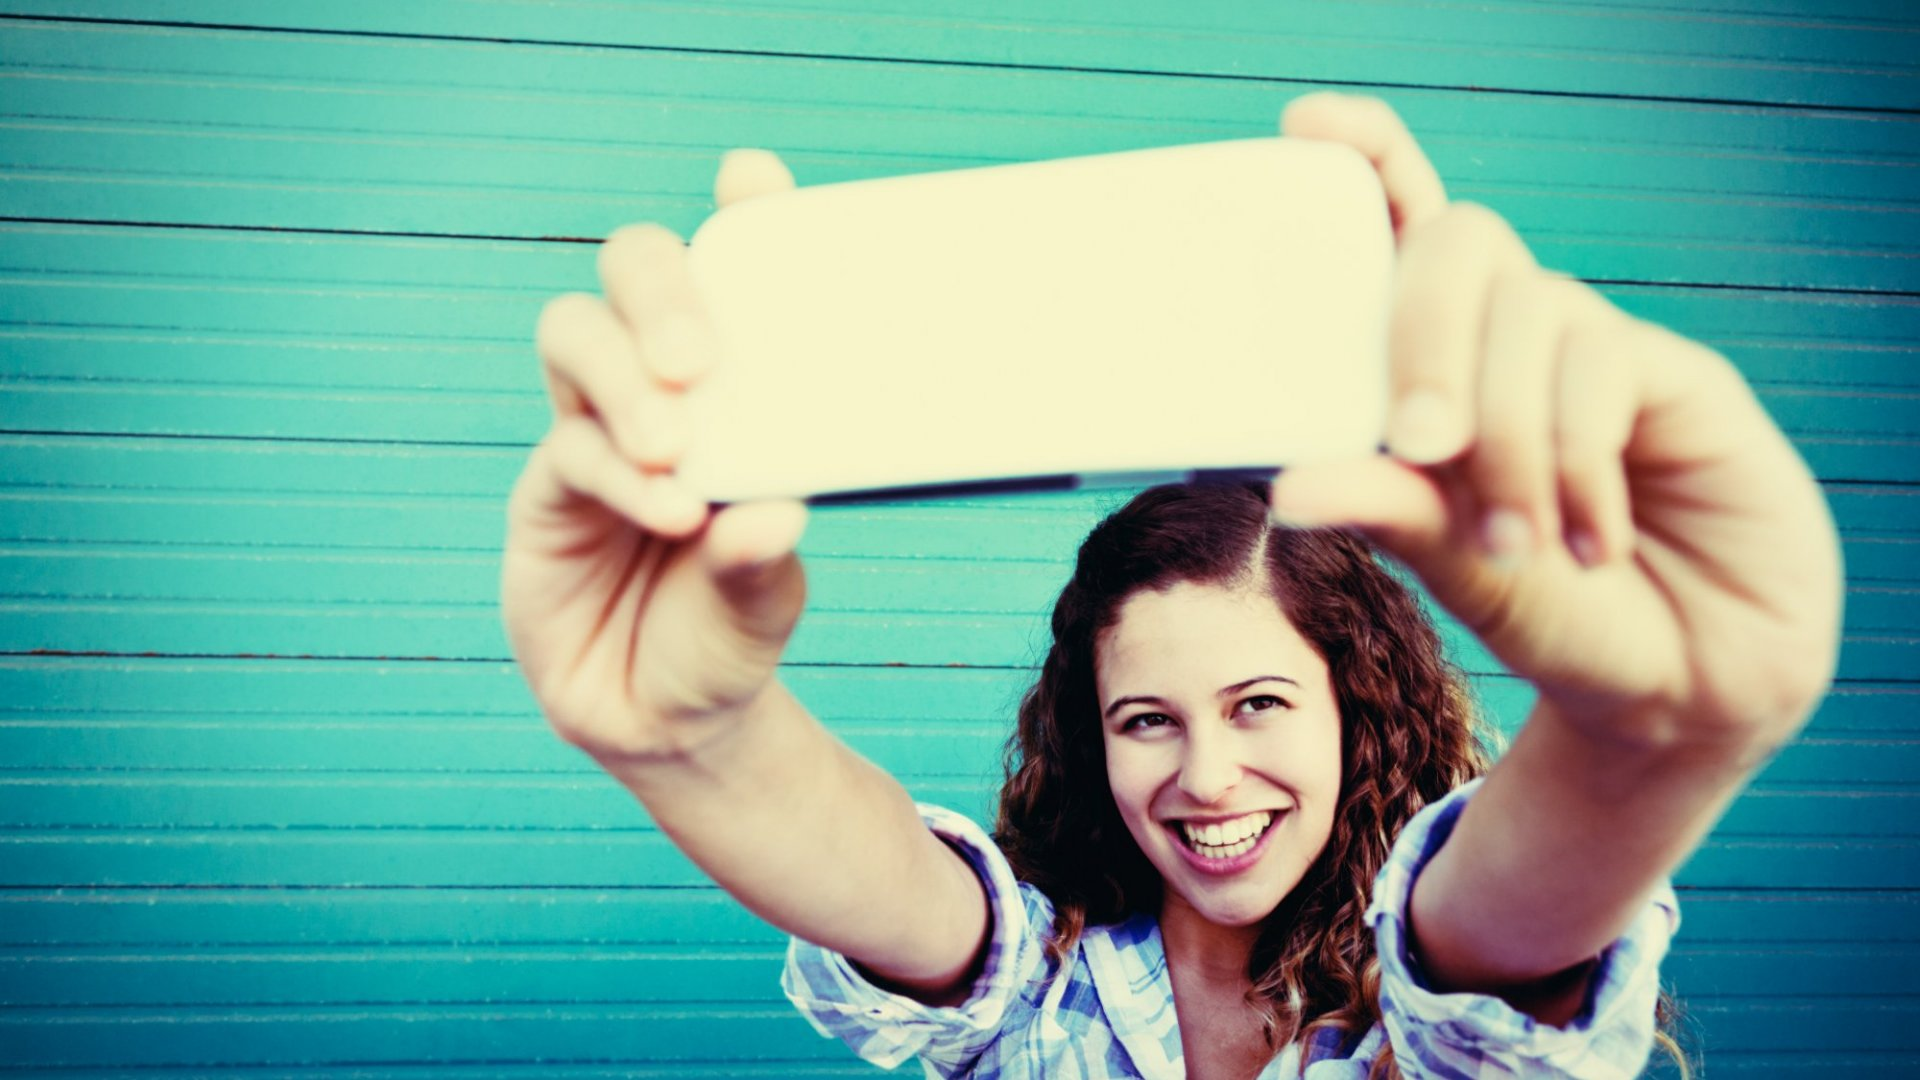 10 Live Streaming Video Tips to Help Build Your Business